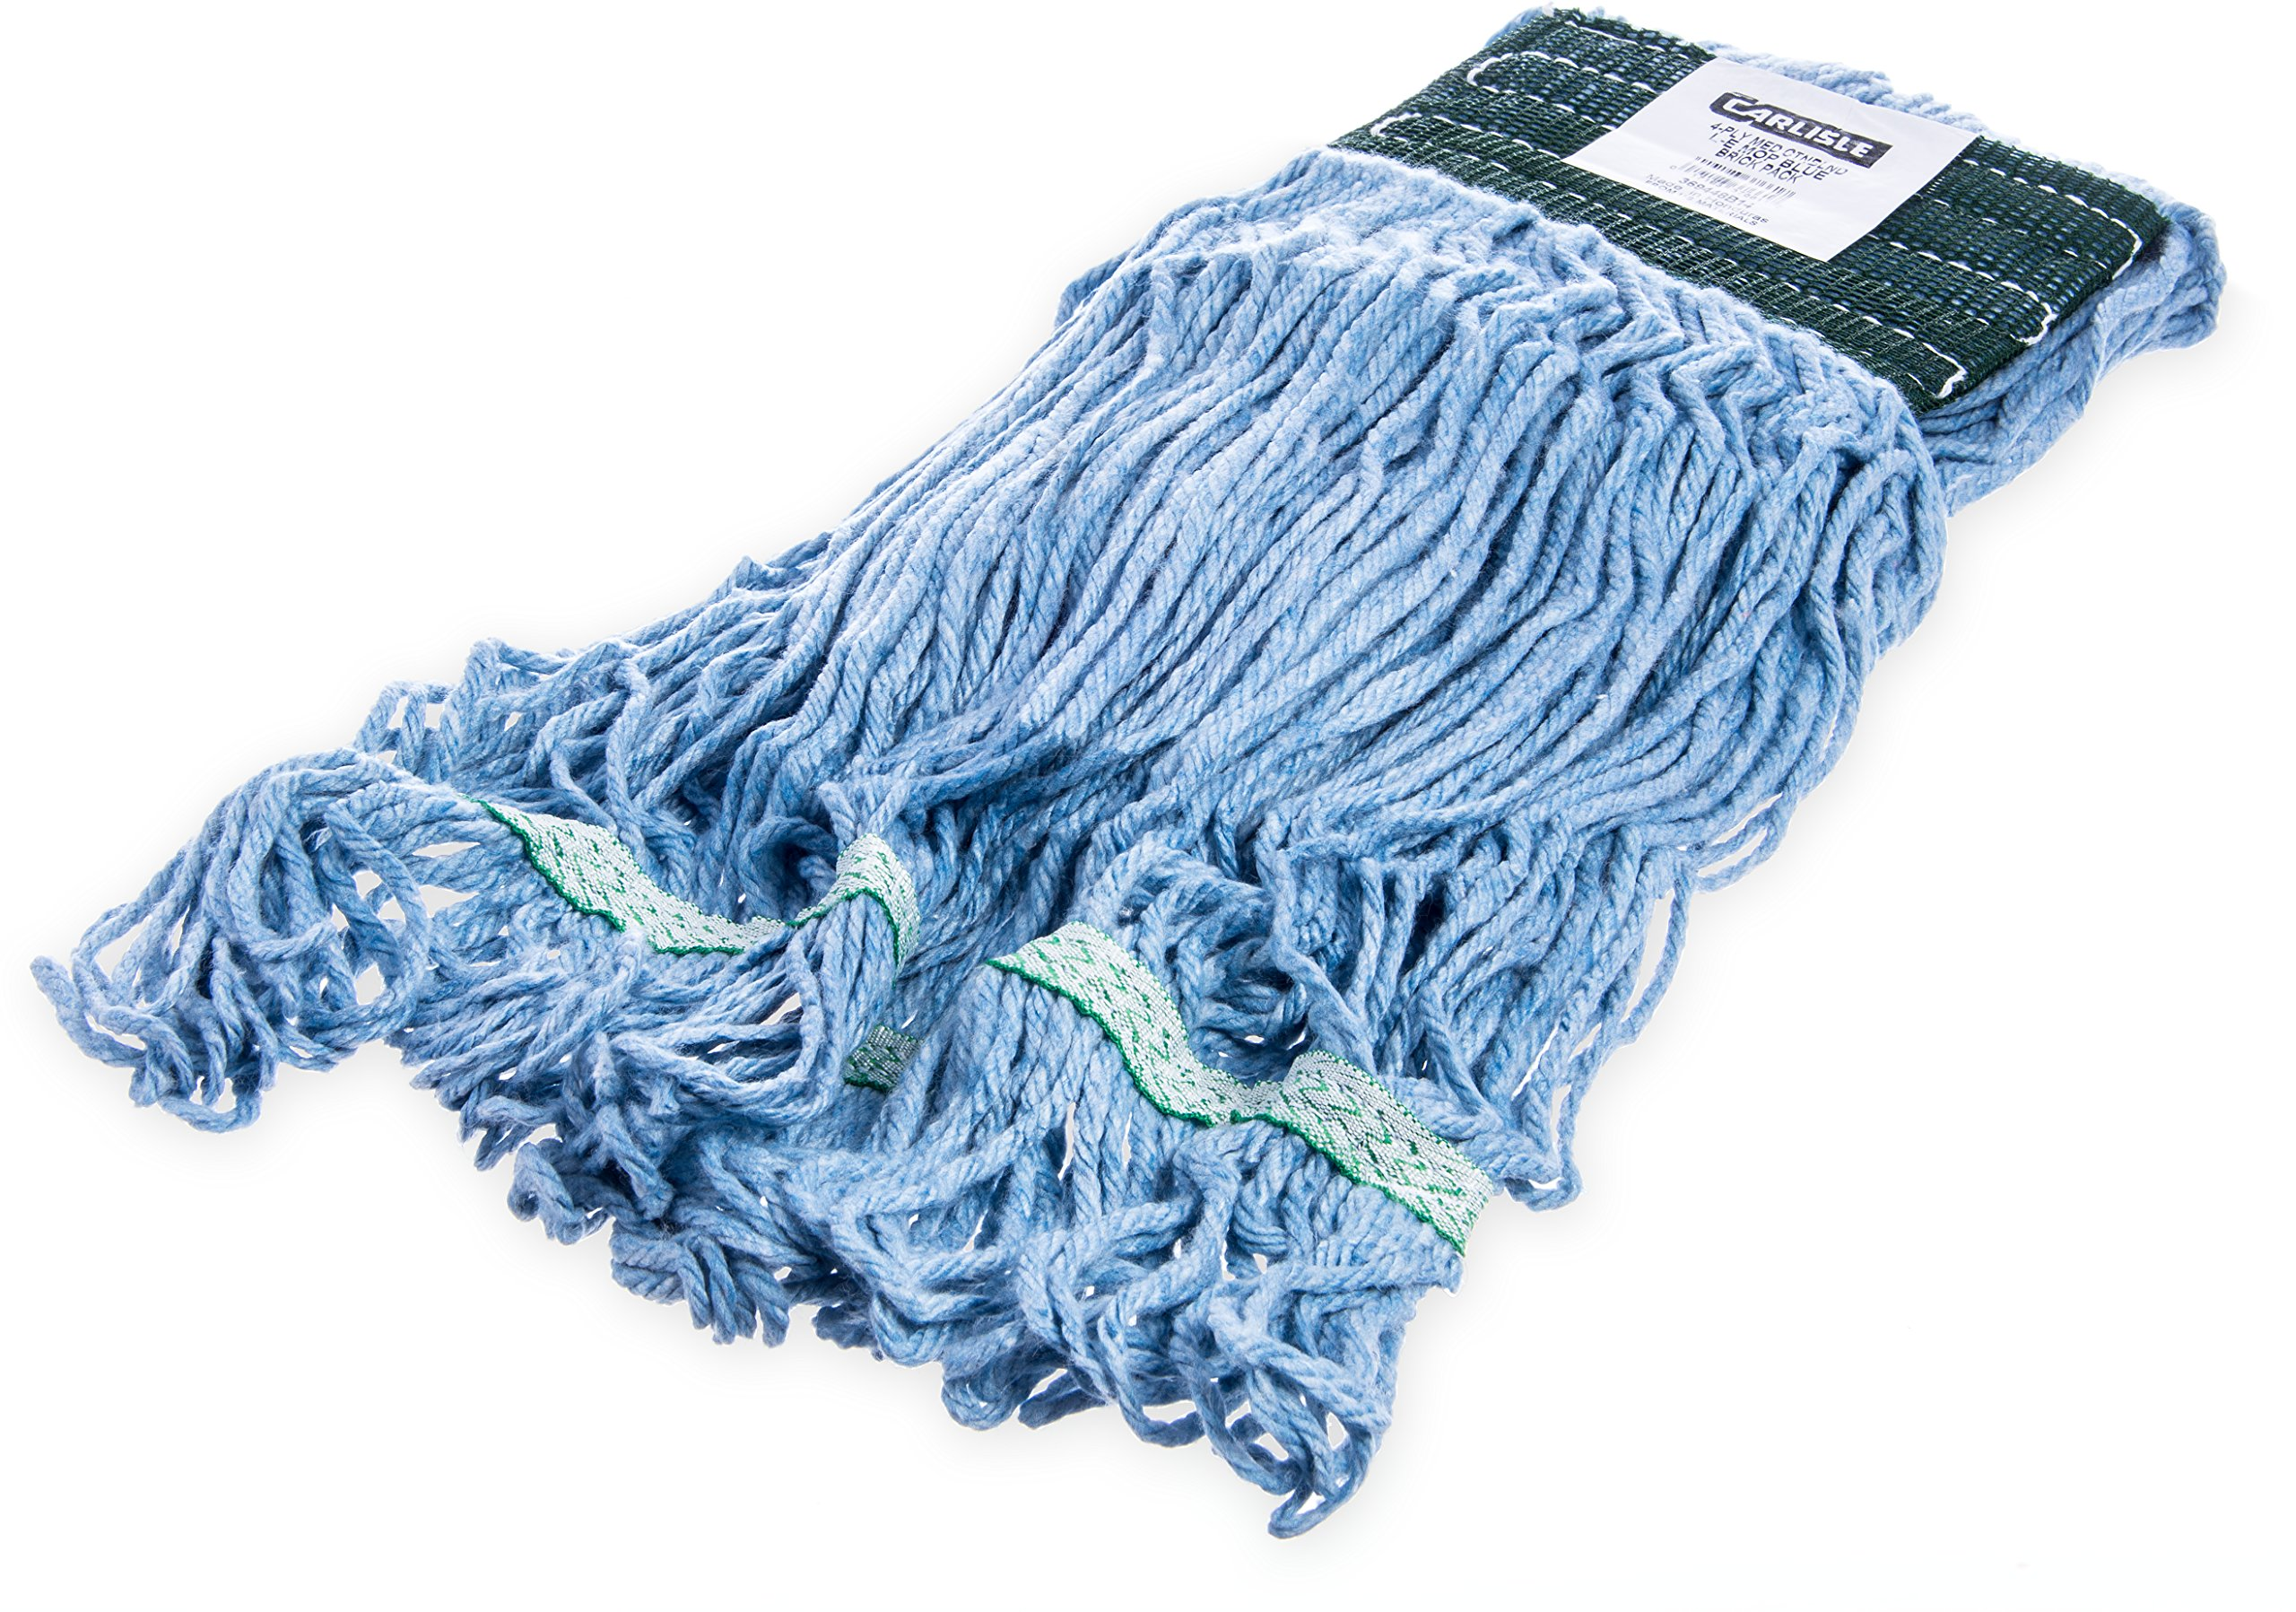 Carlisle 369448B14  Looped-End Mop with Green Band, 12'' H, 5'' W, 18'' L, Cotton Blend, Medium, Blue (Pack of 12)